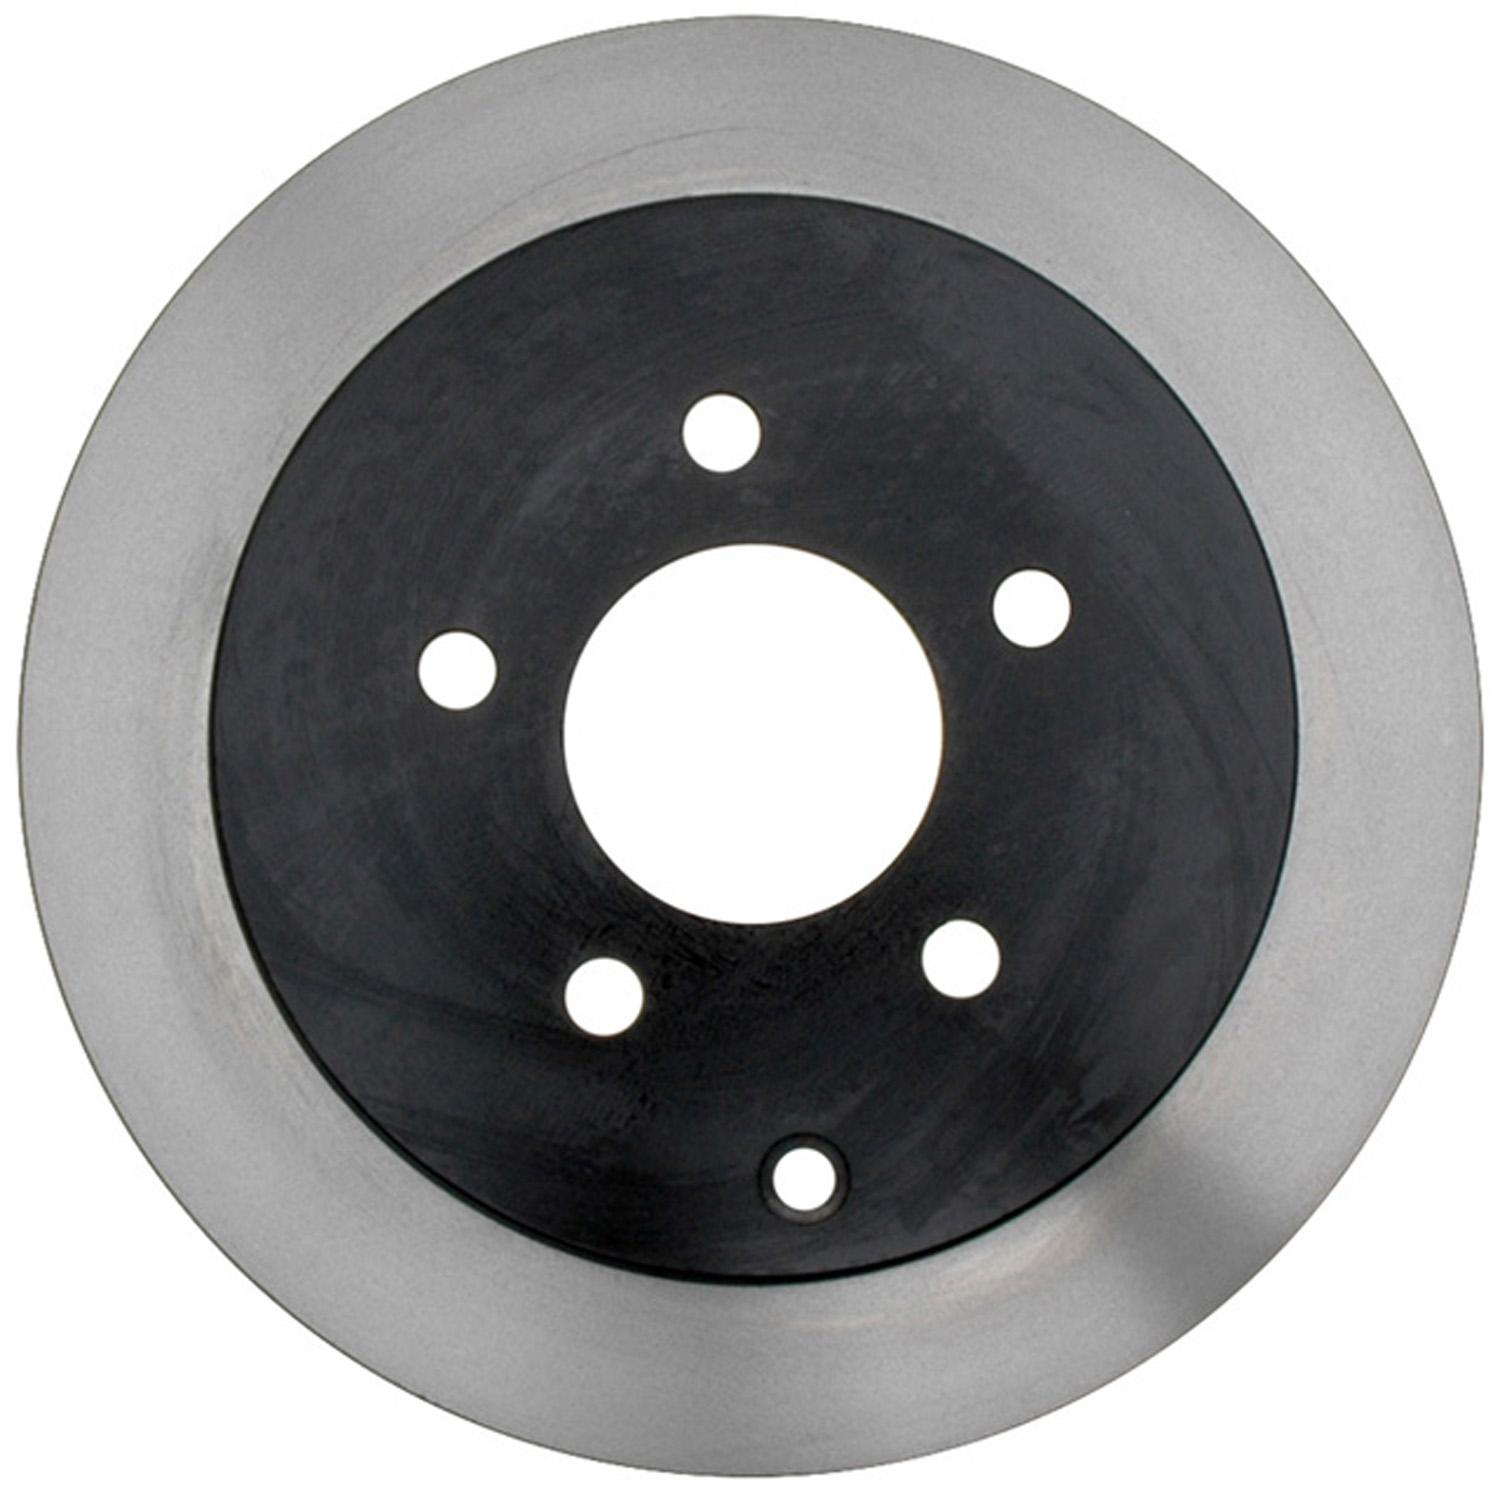 ACDELCO GOLD/PROFESSIONAL BRAKES - Black Hat (Rear) - ADU 18A1423